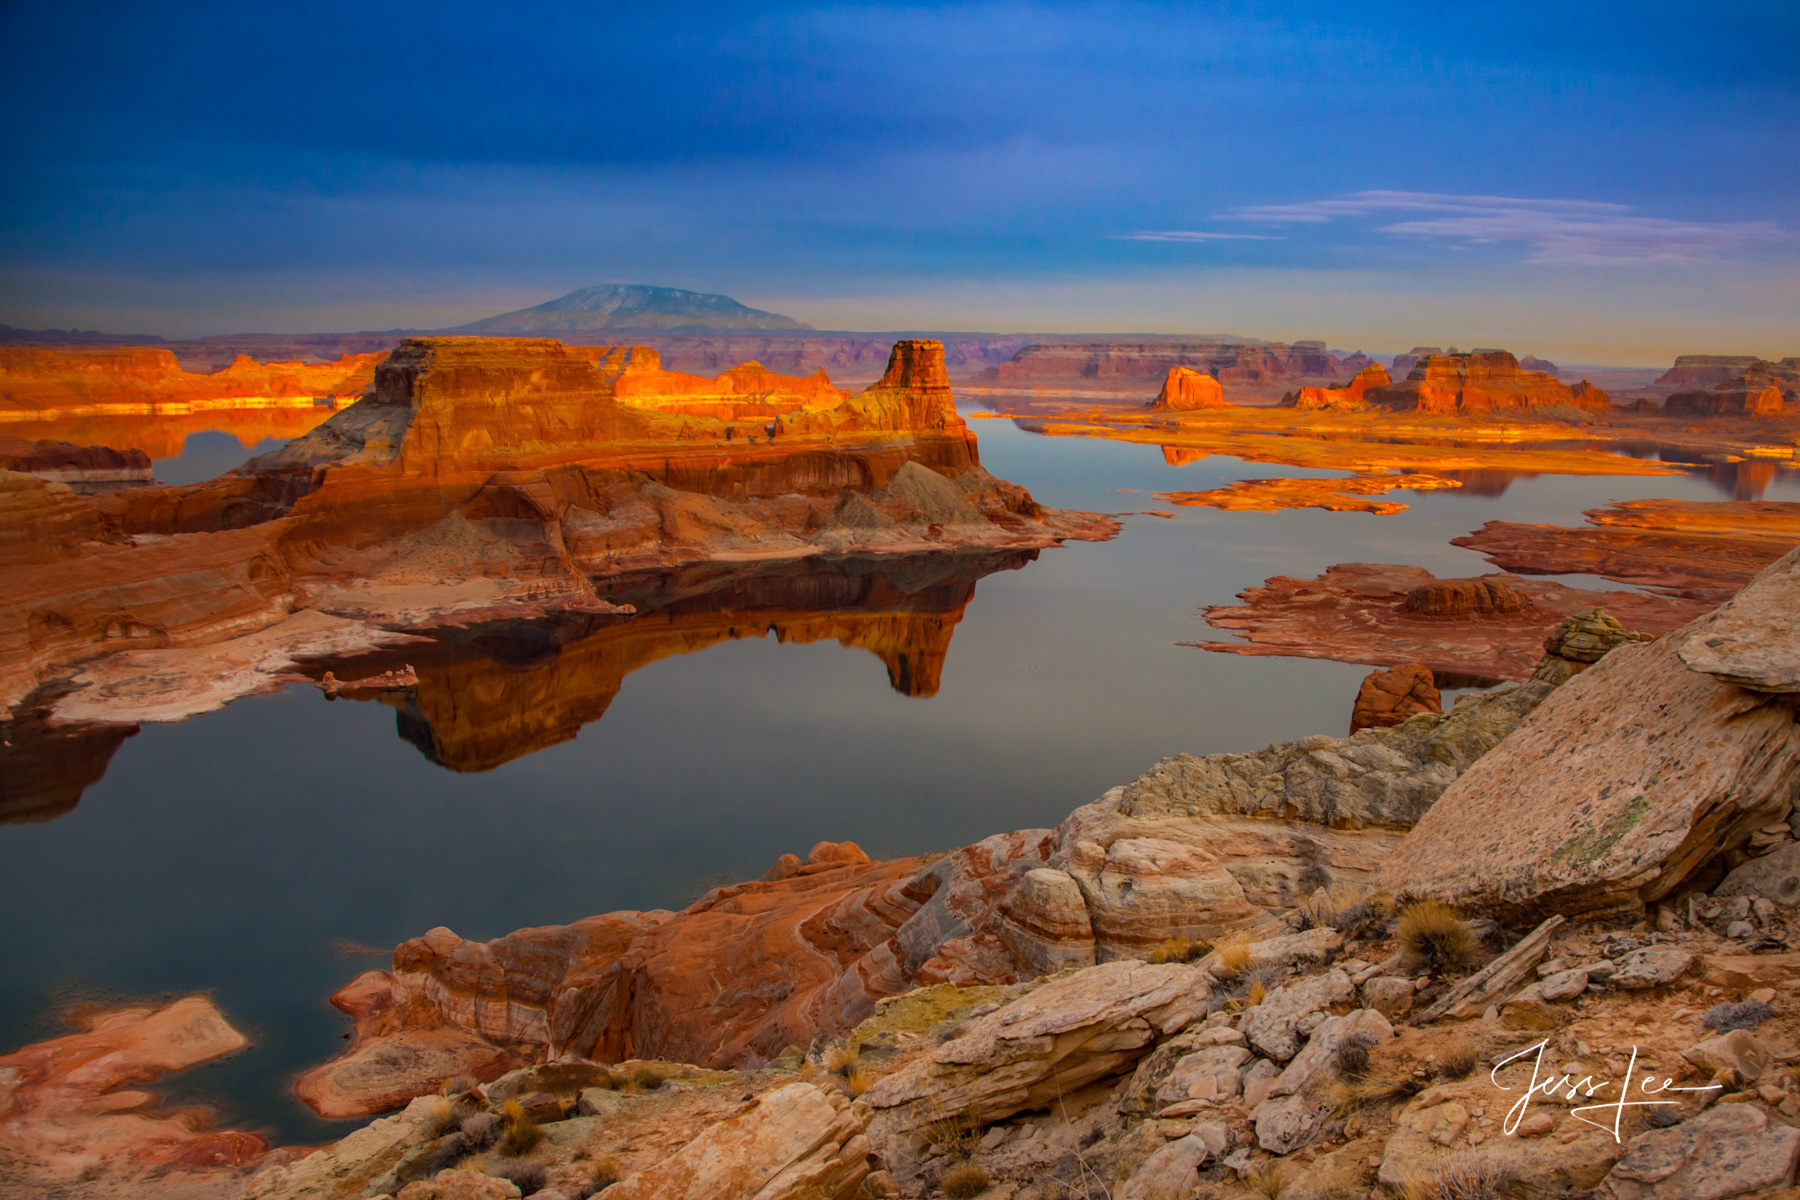 Limited Edition of 50 Exclusive high-resolution Museum Quality Fine Art Prints of Lake Powell Red Rocks Country of the American...